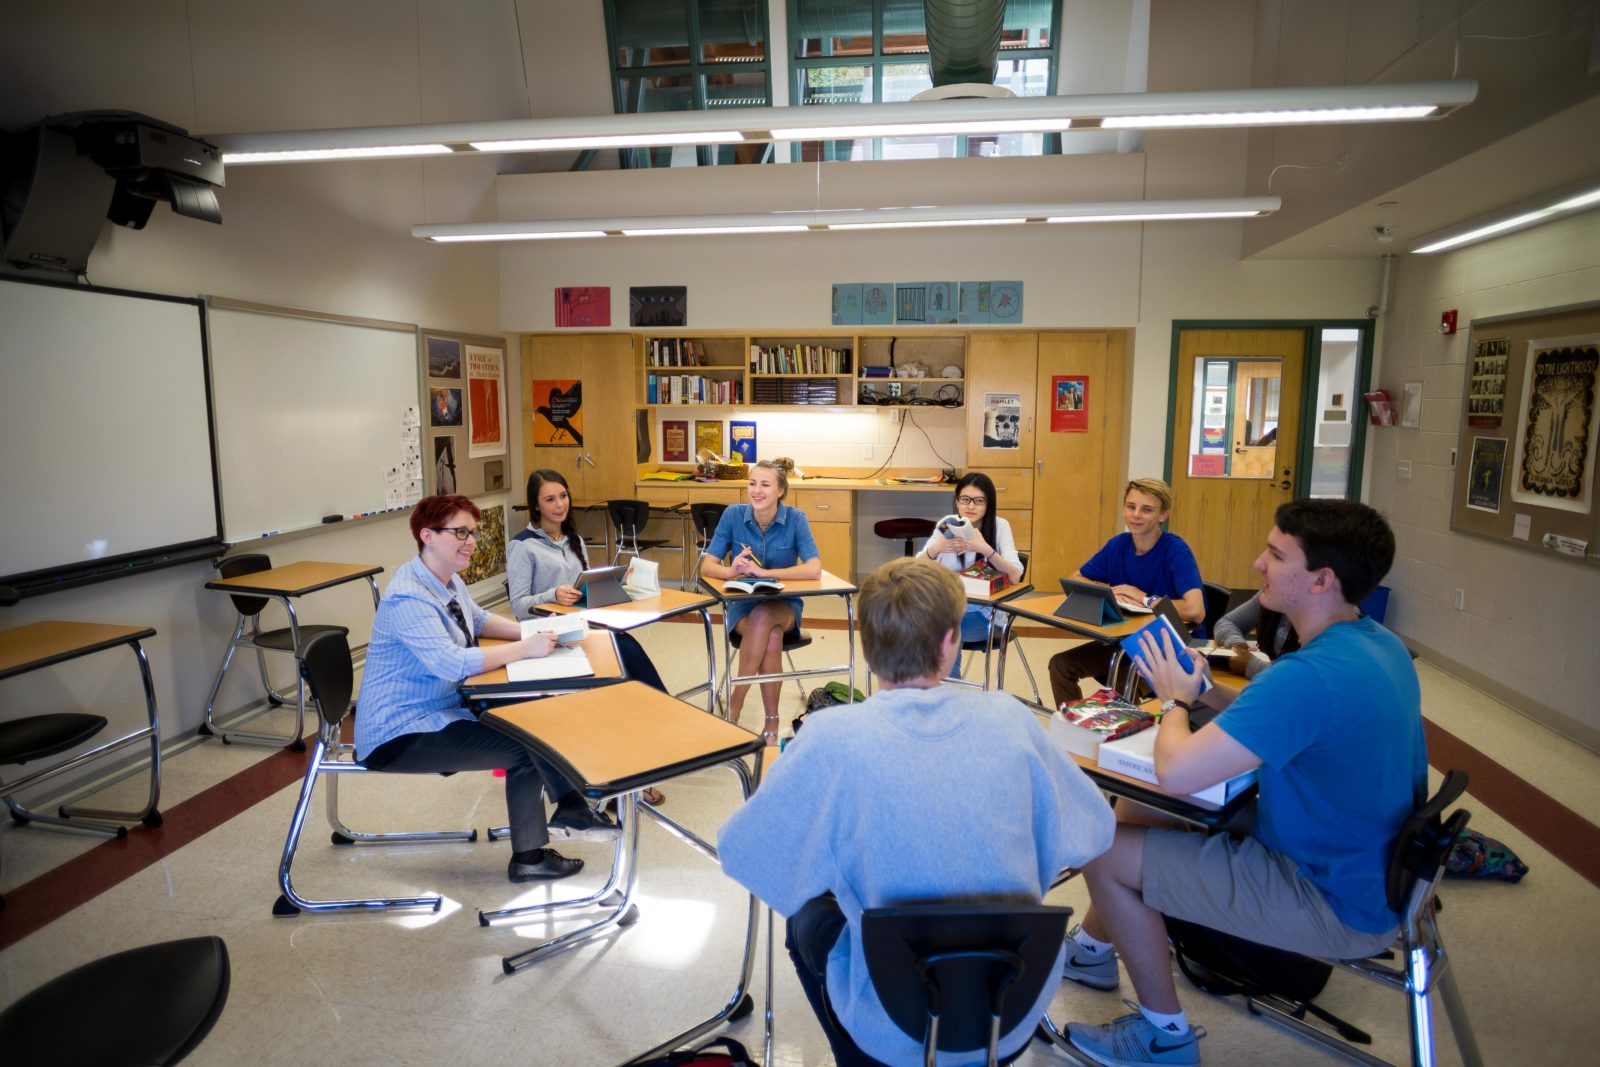 American Literature: Students engage in a graded discussion on one of the books they are reading, acquiring group information for their essays.